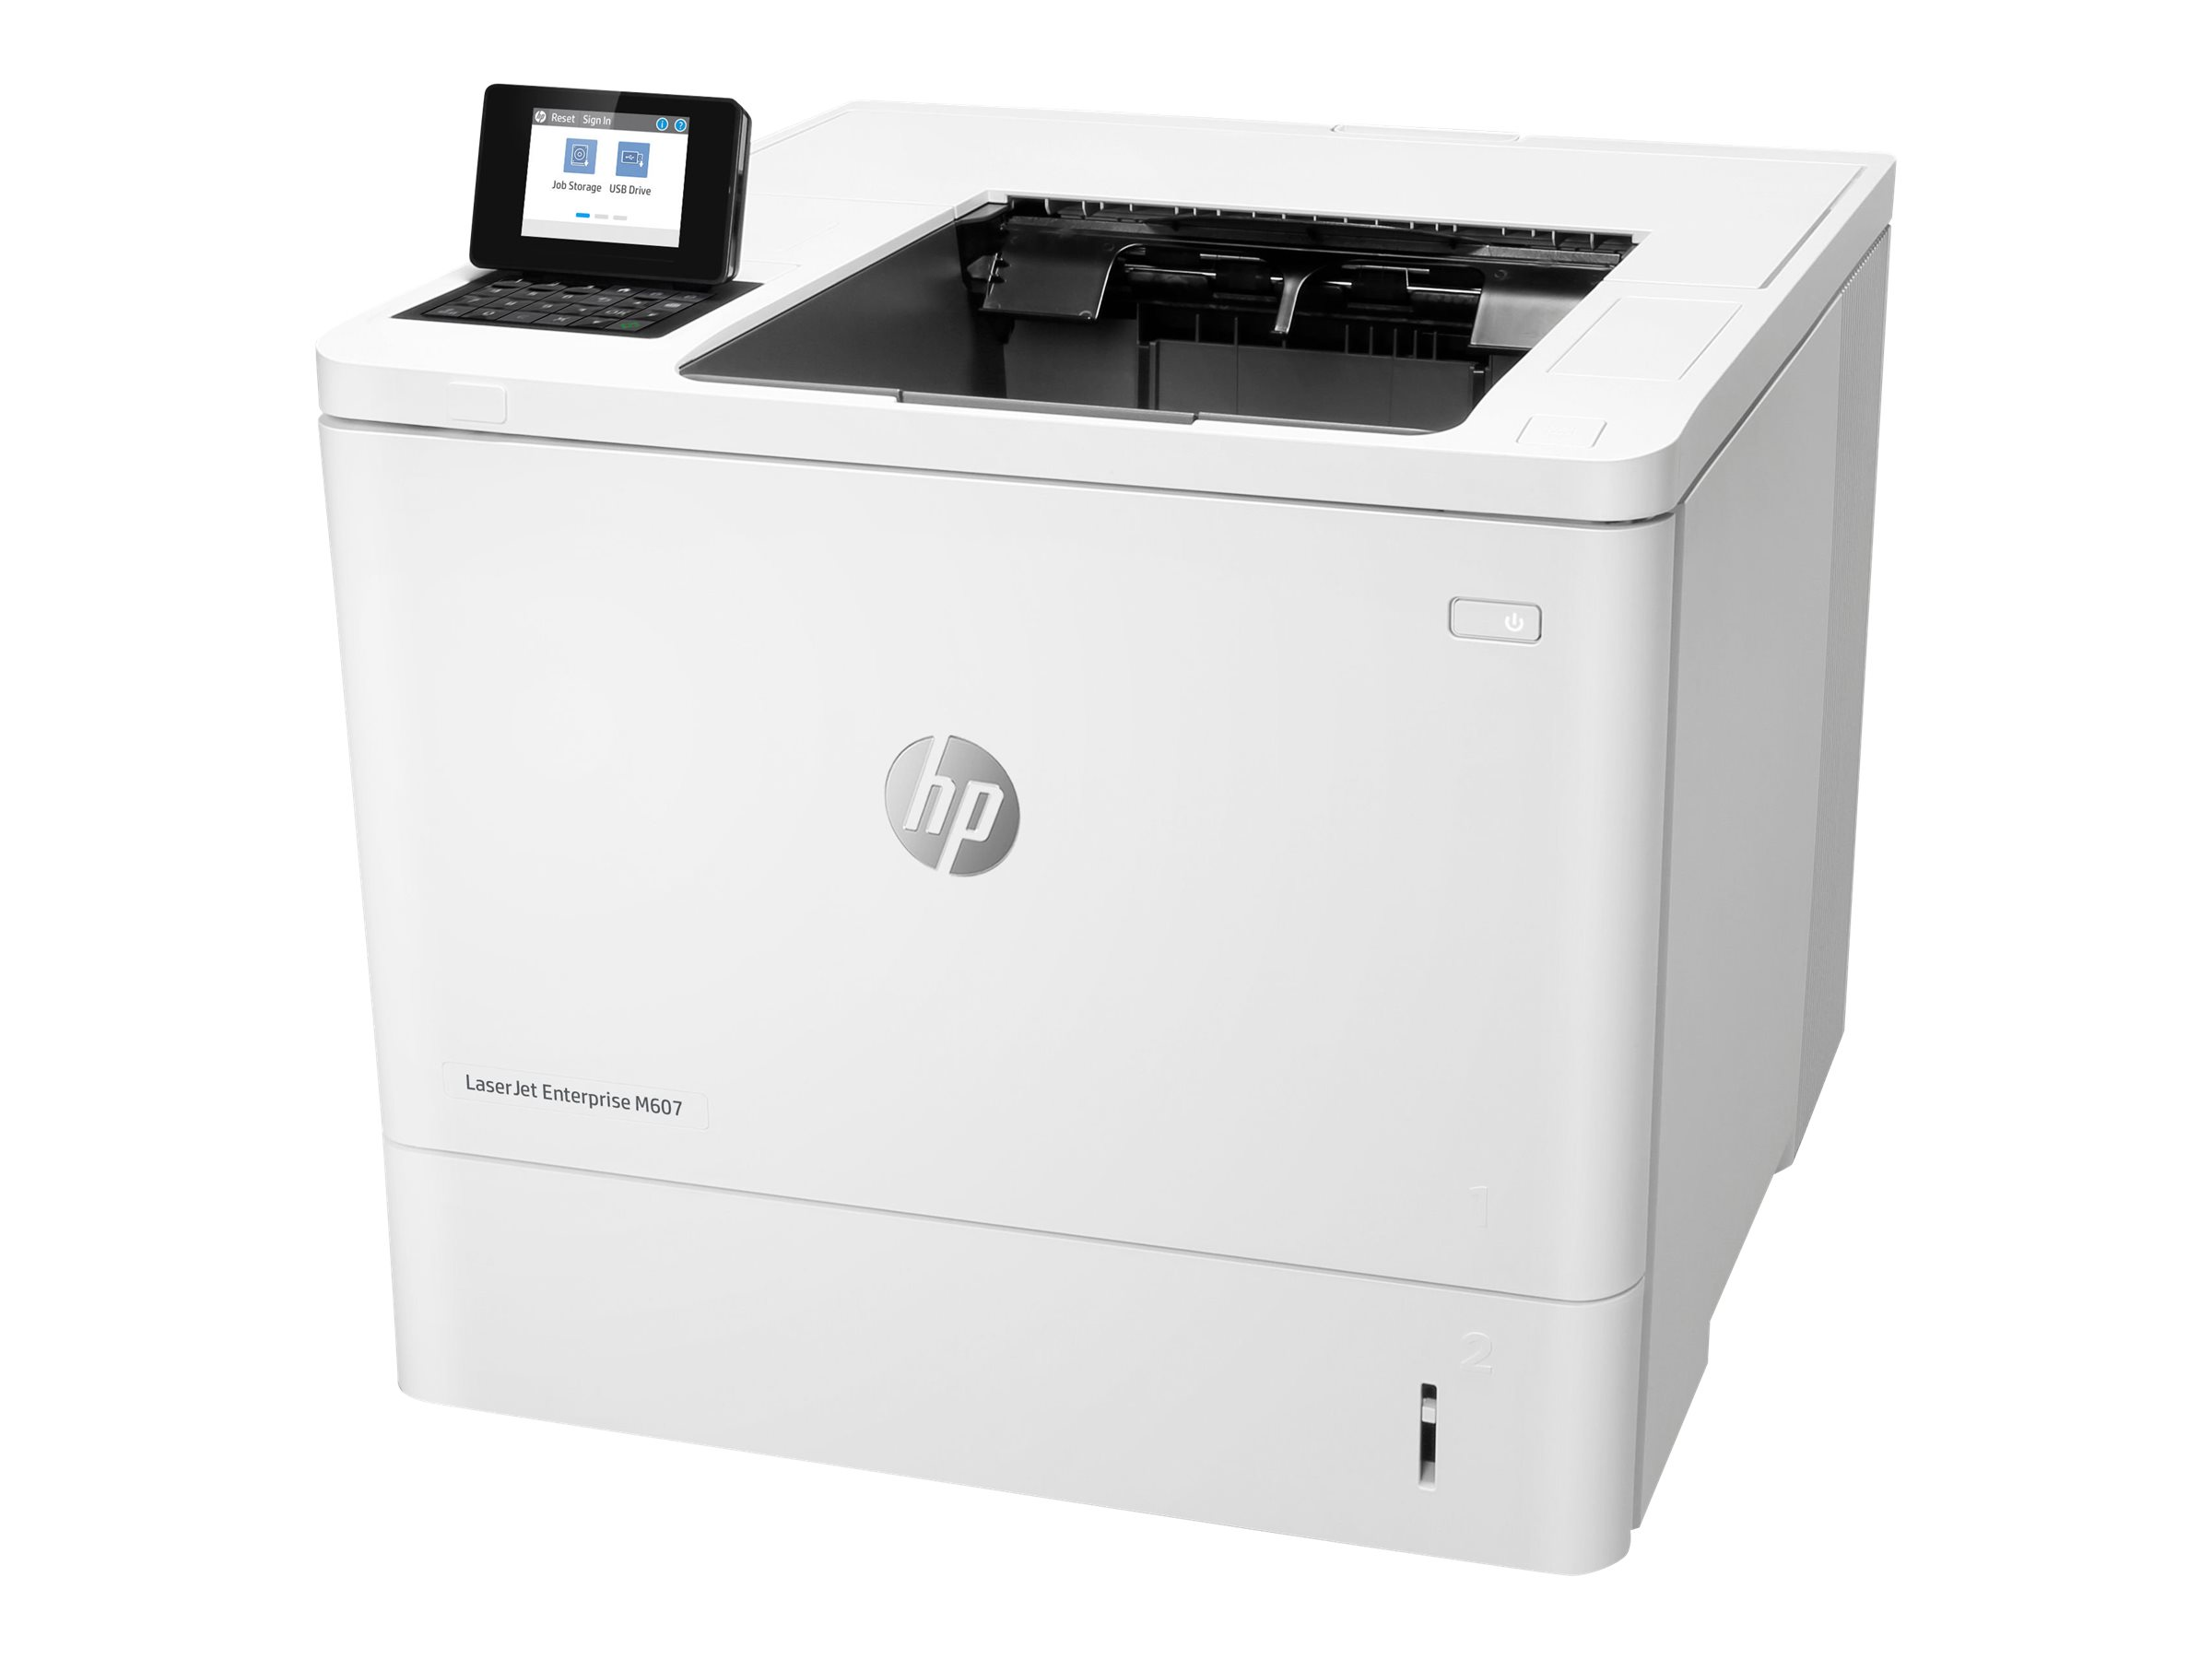 HP LaserJet Enterprise M607n - printer - B/W - laser